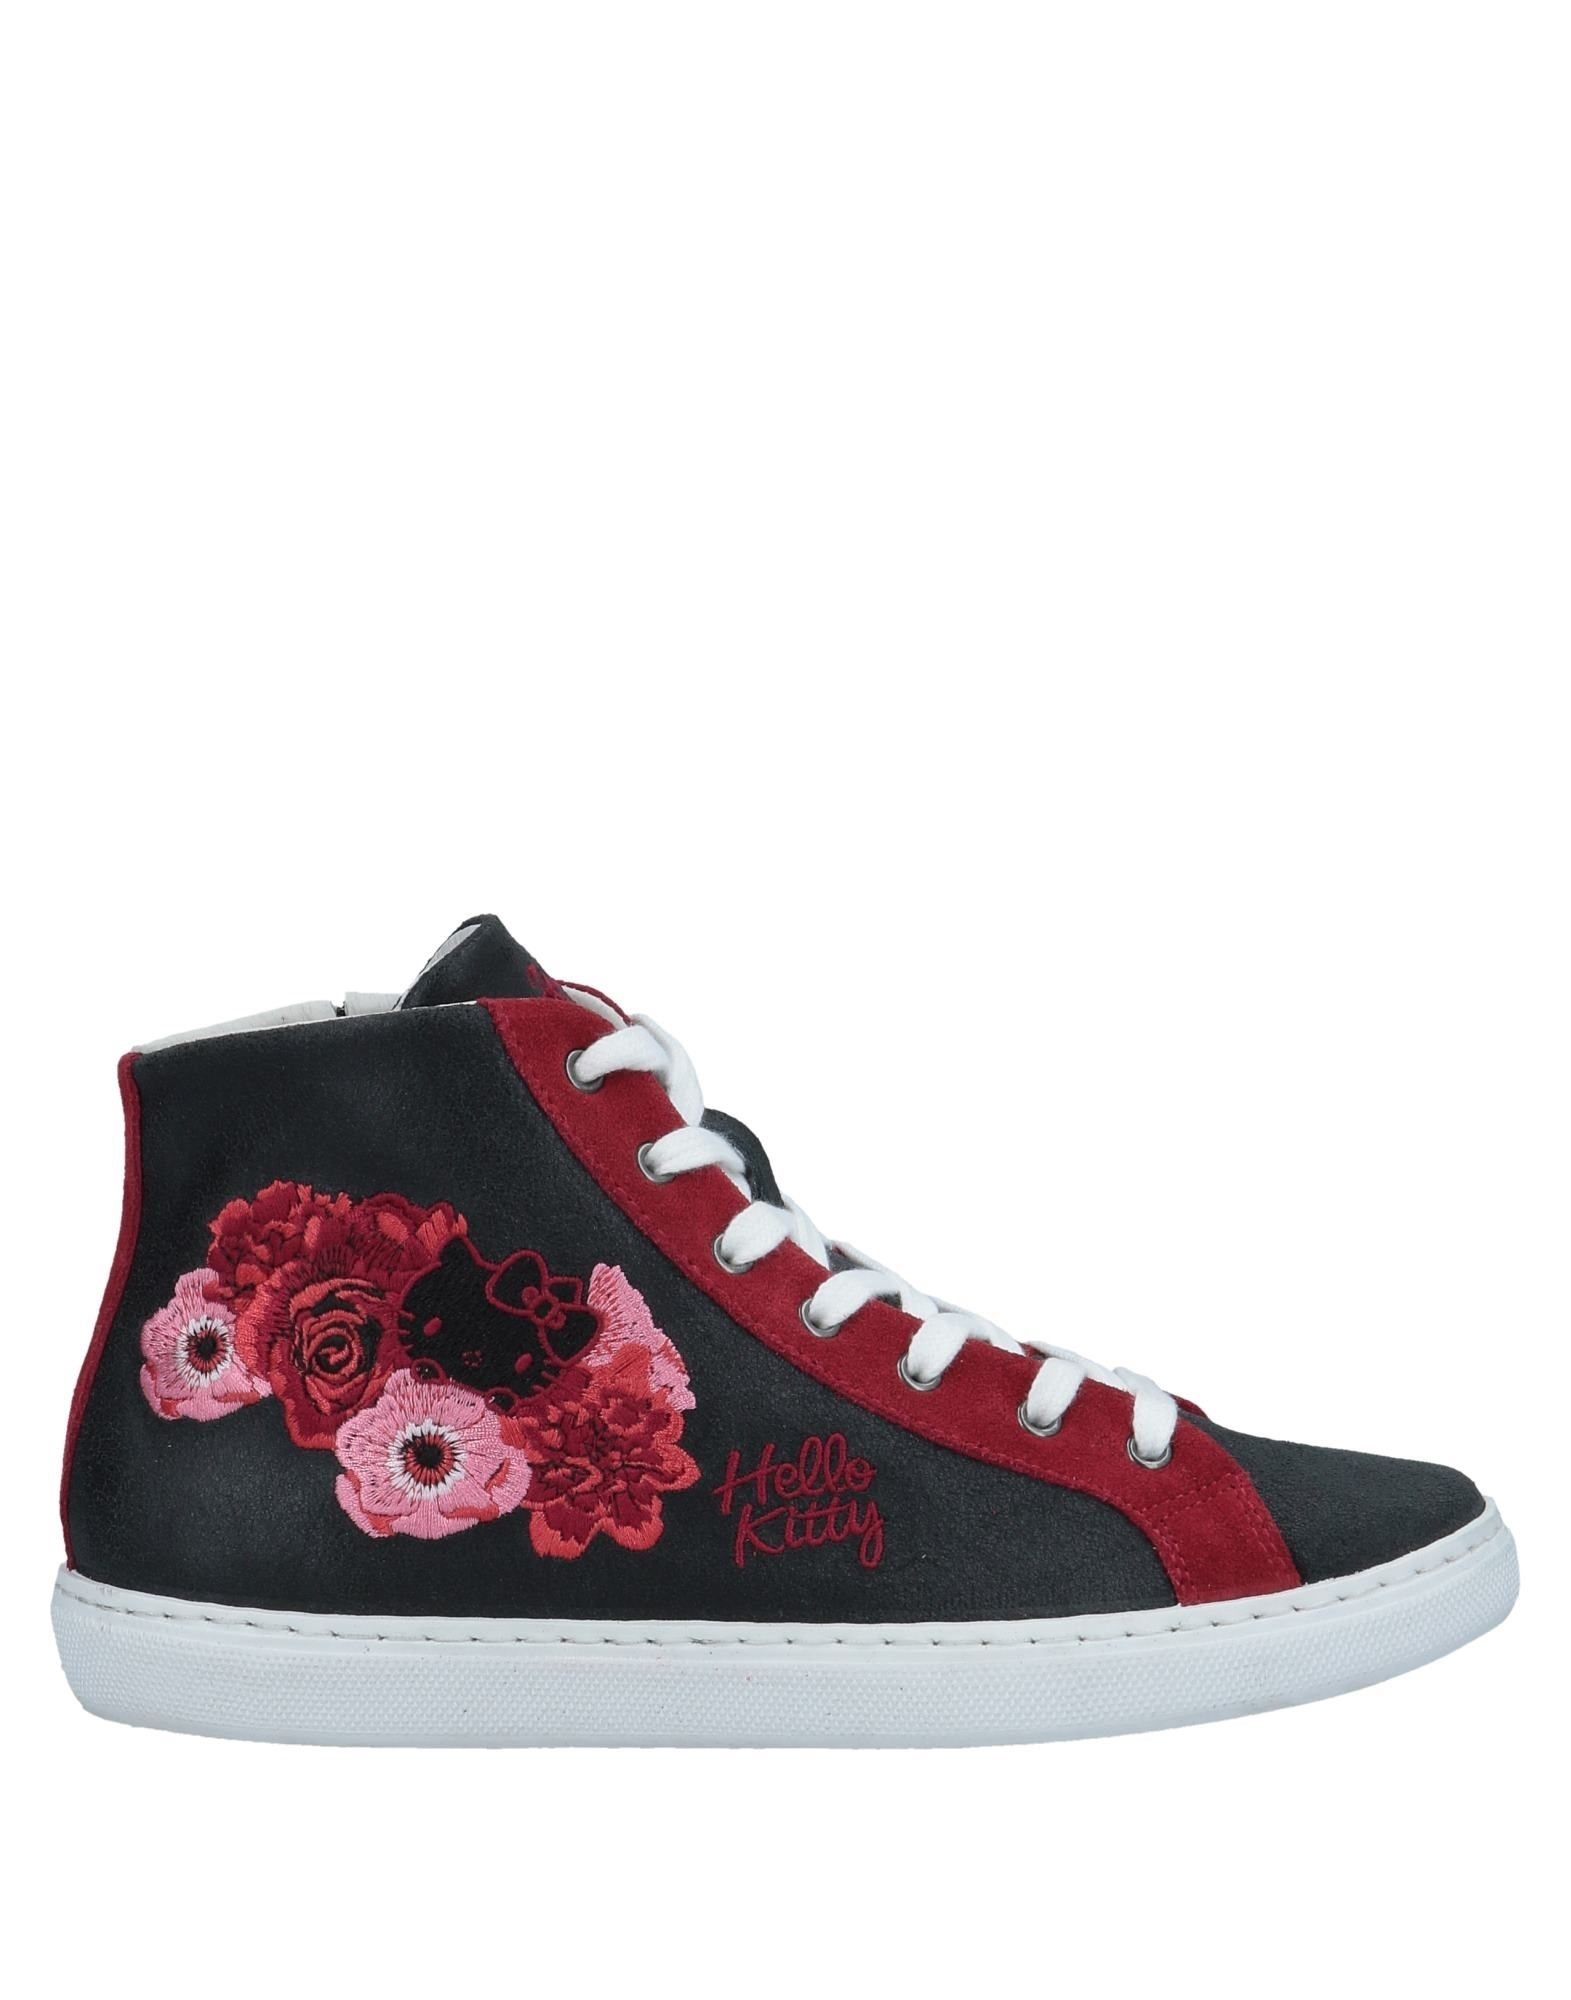 2Star on Sneakers - Women 2Star Sneakers online on 2Star  Canada - 11558959WK 6d6695